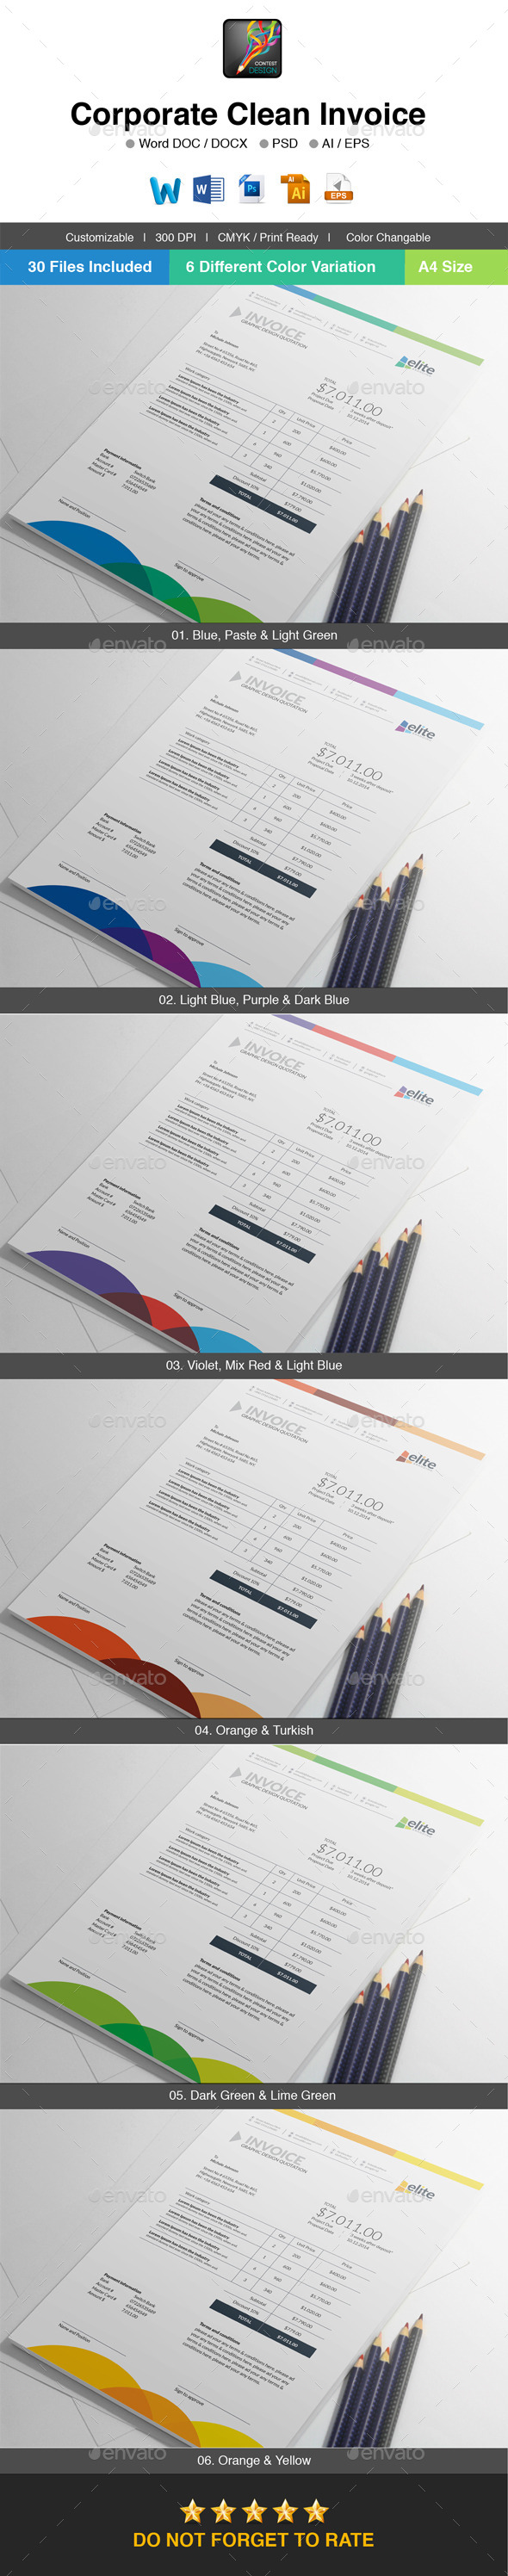 GraphicRiver Elite Corporate Clean Invoice Template 10135188